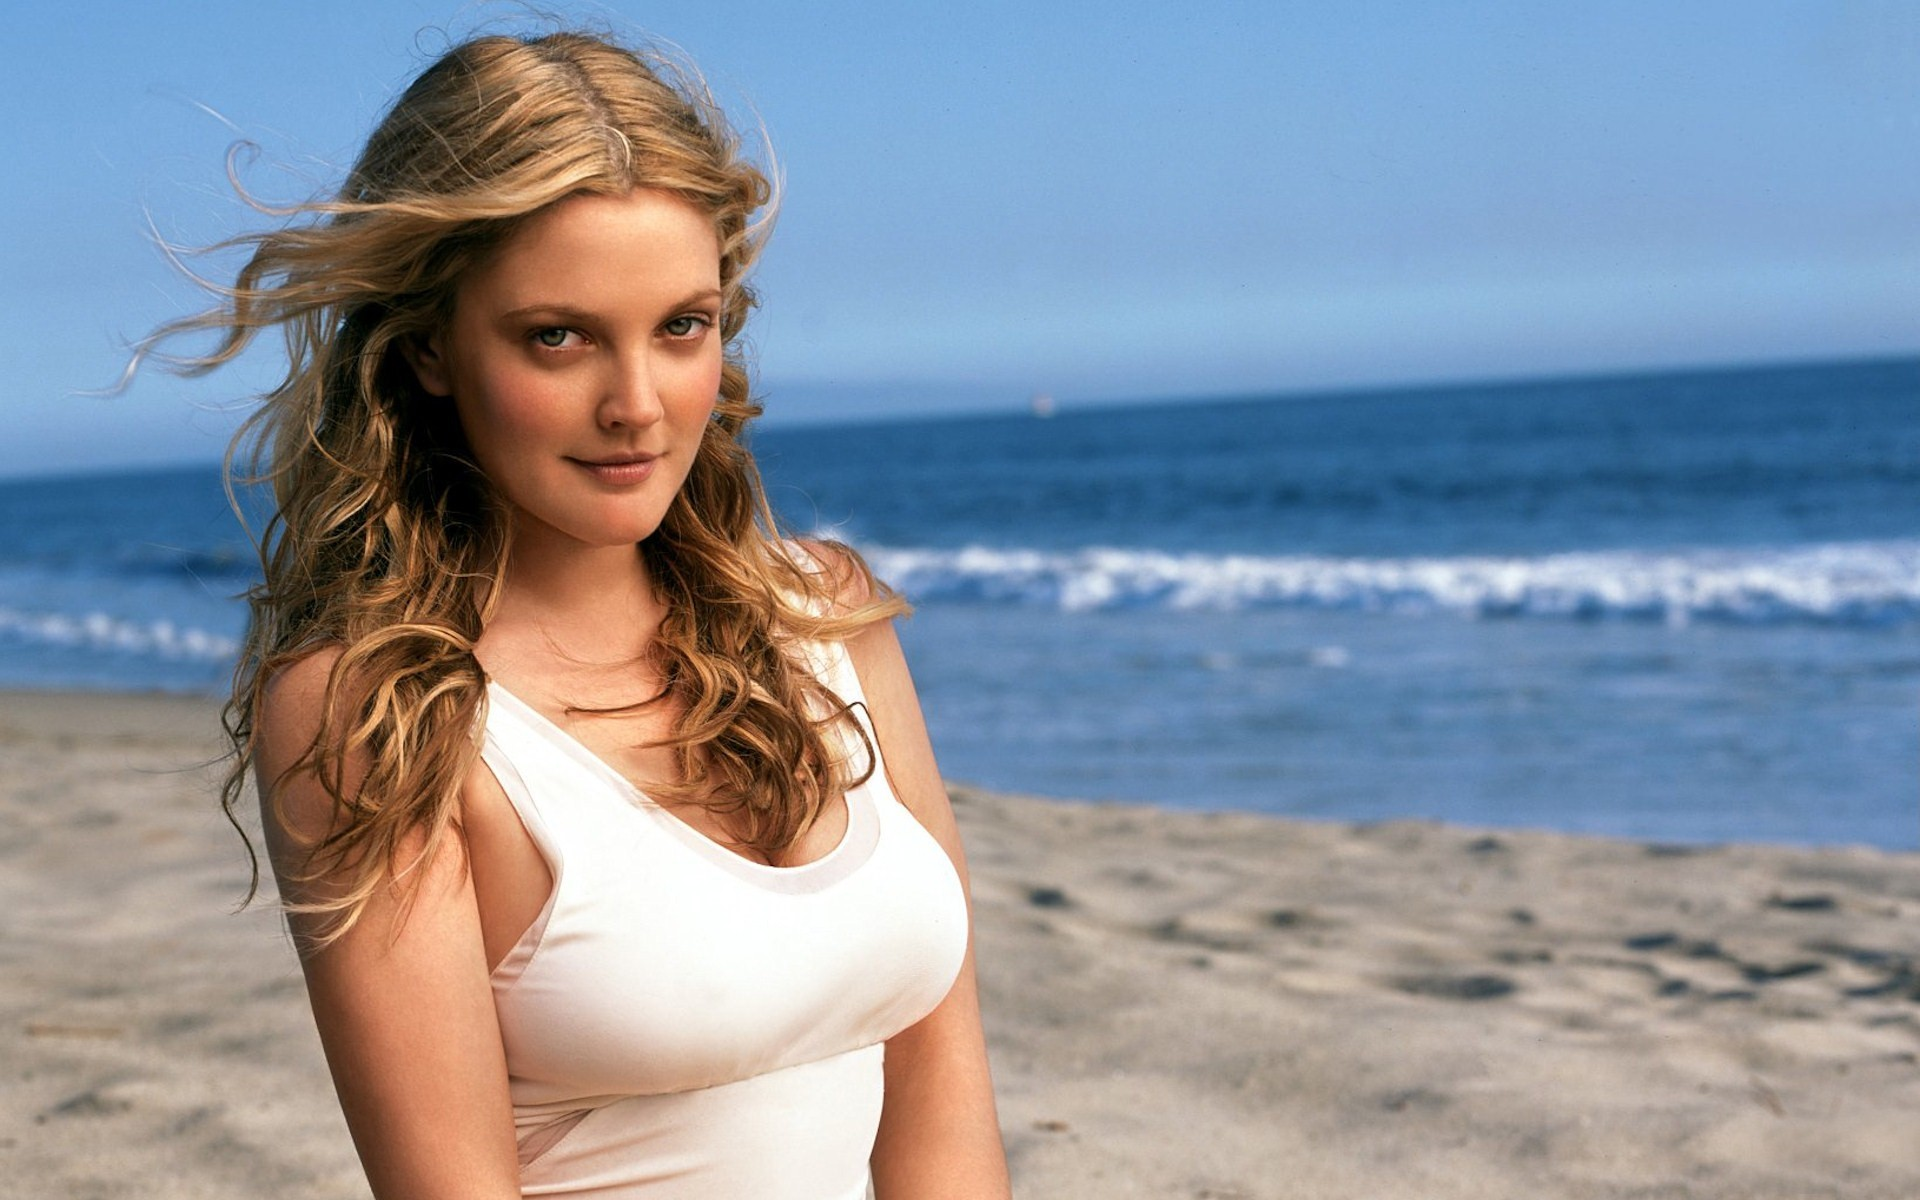 Drew Barrymore Wallpapers Download HD Beautiful Actress 1920x1200